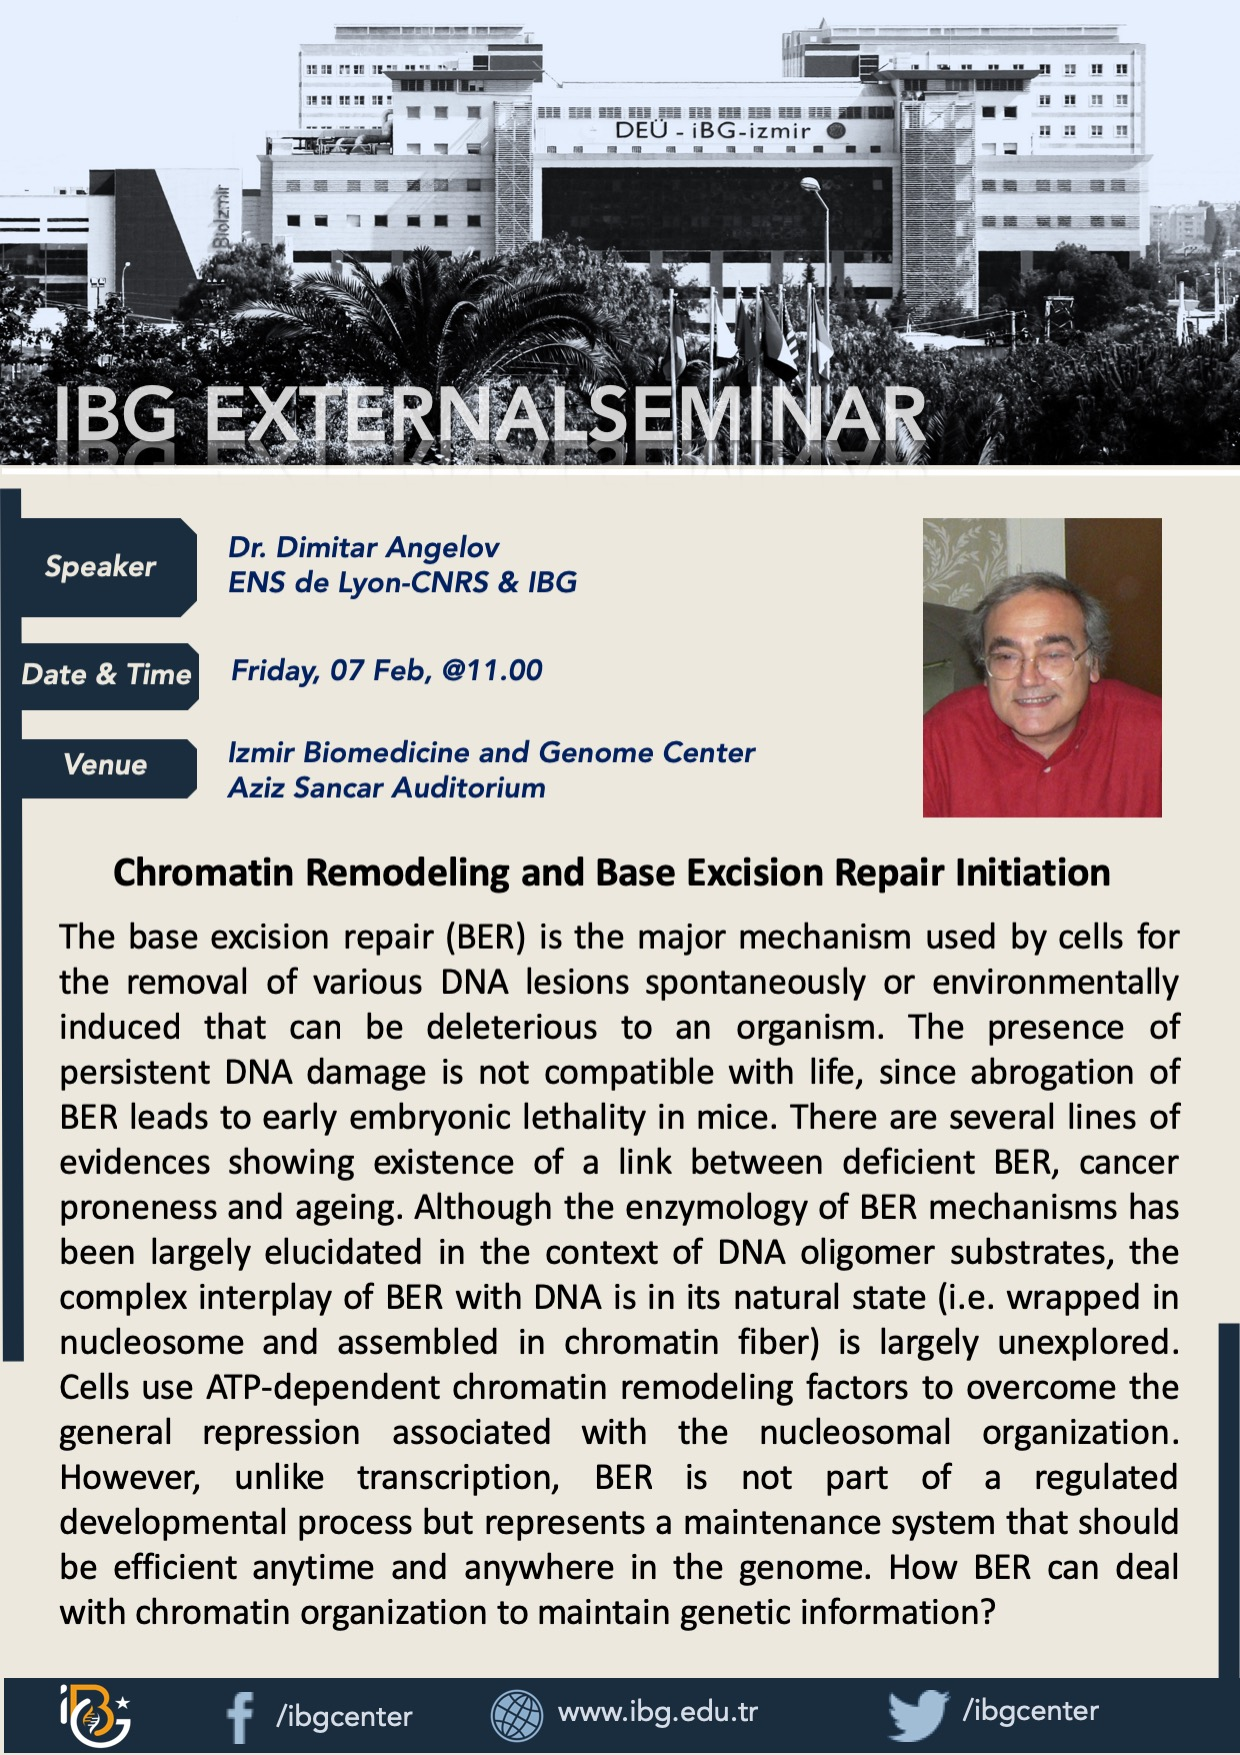 Chromatin Remodeling and Base Excision Repair Initiation